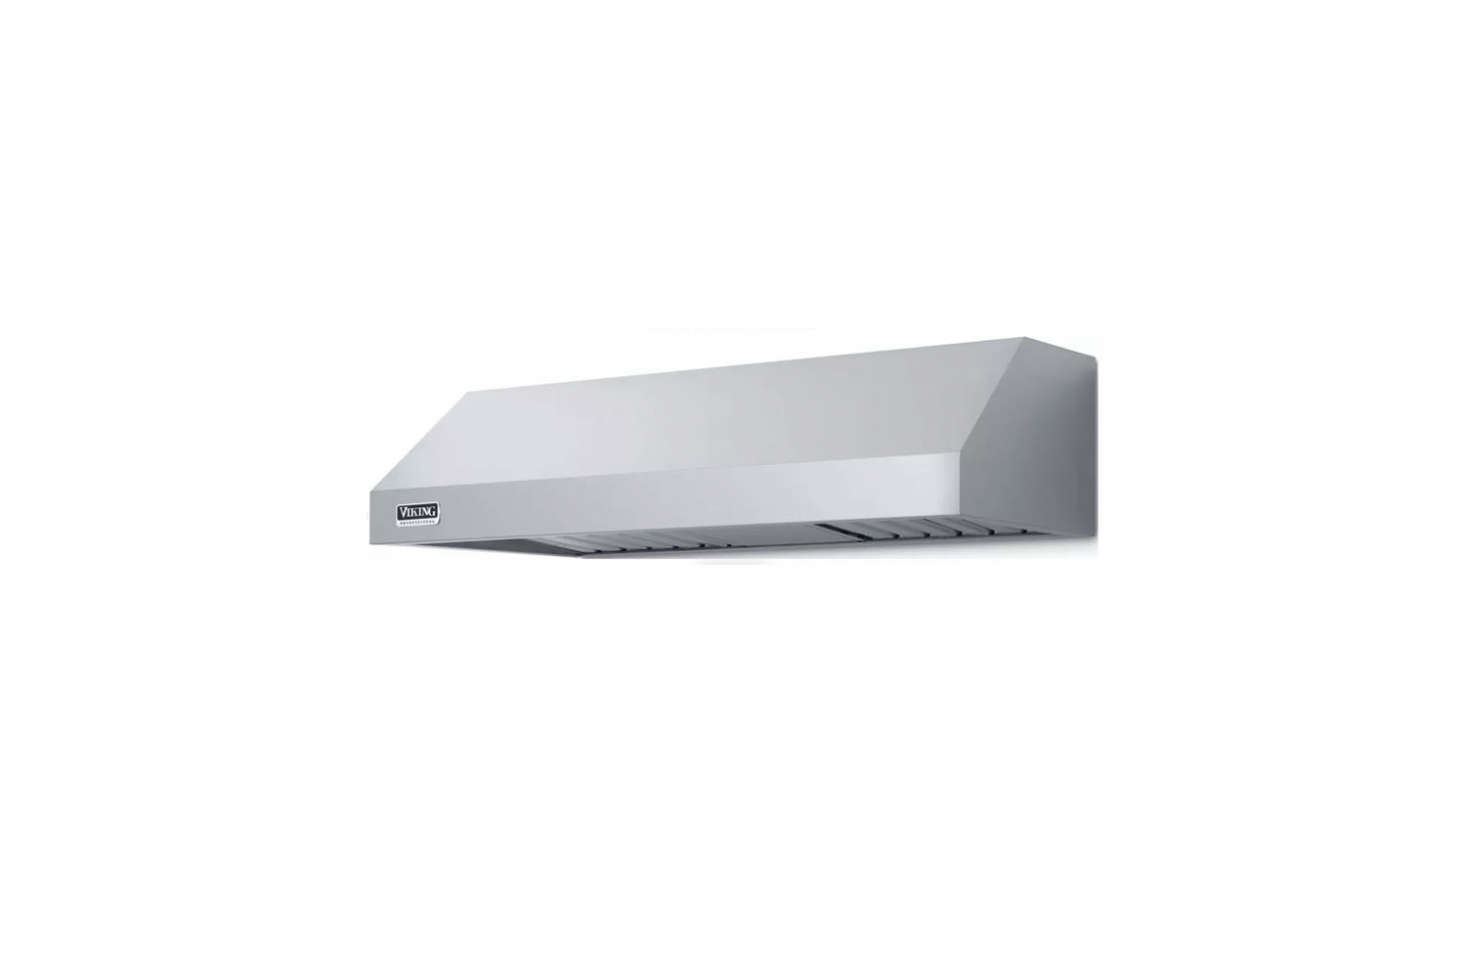 TheViking Professional 5 Series 36-Inch Under Cabinet Range Hood is similar to the hood within the custom housing in the kitchen. It's $1,099 for the 36-inch model in stainless at AJ Madison.